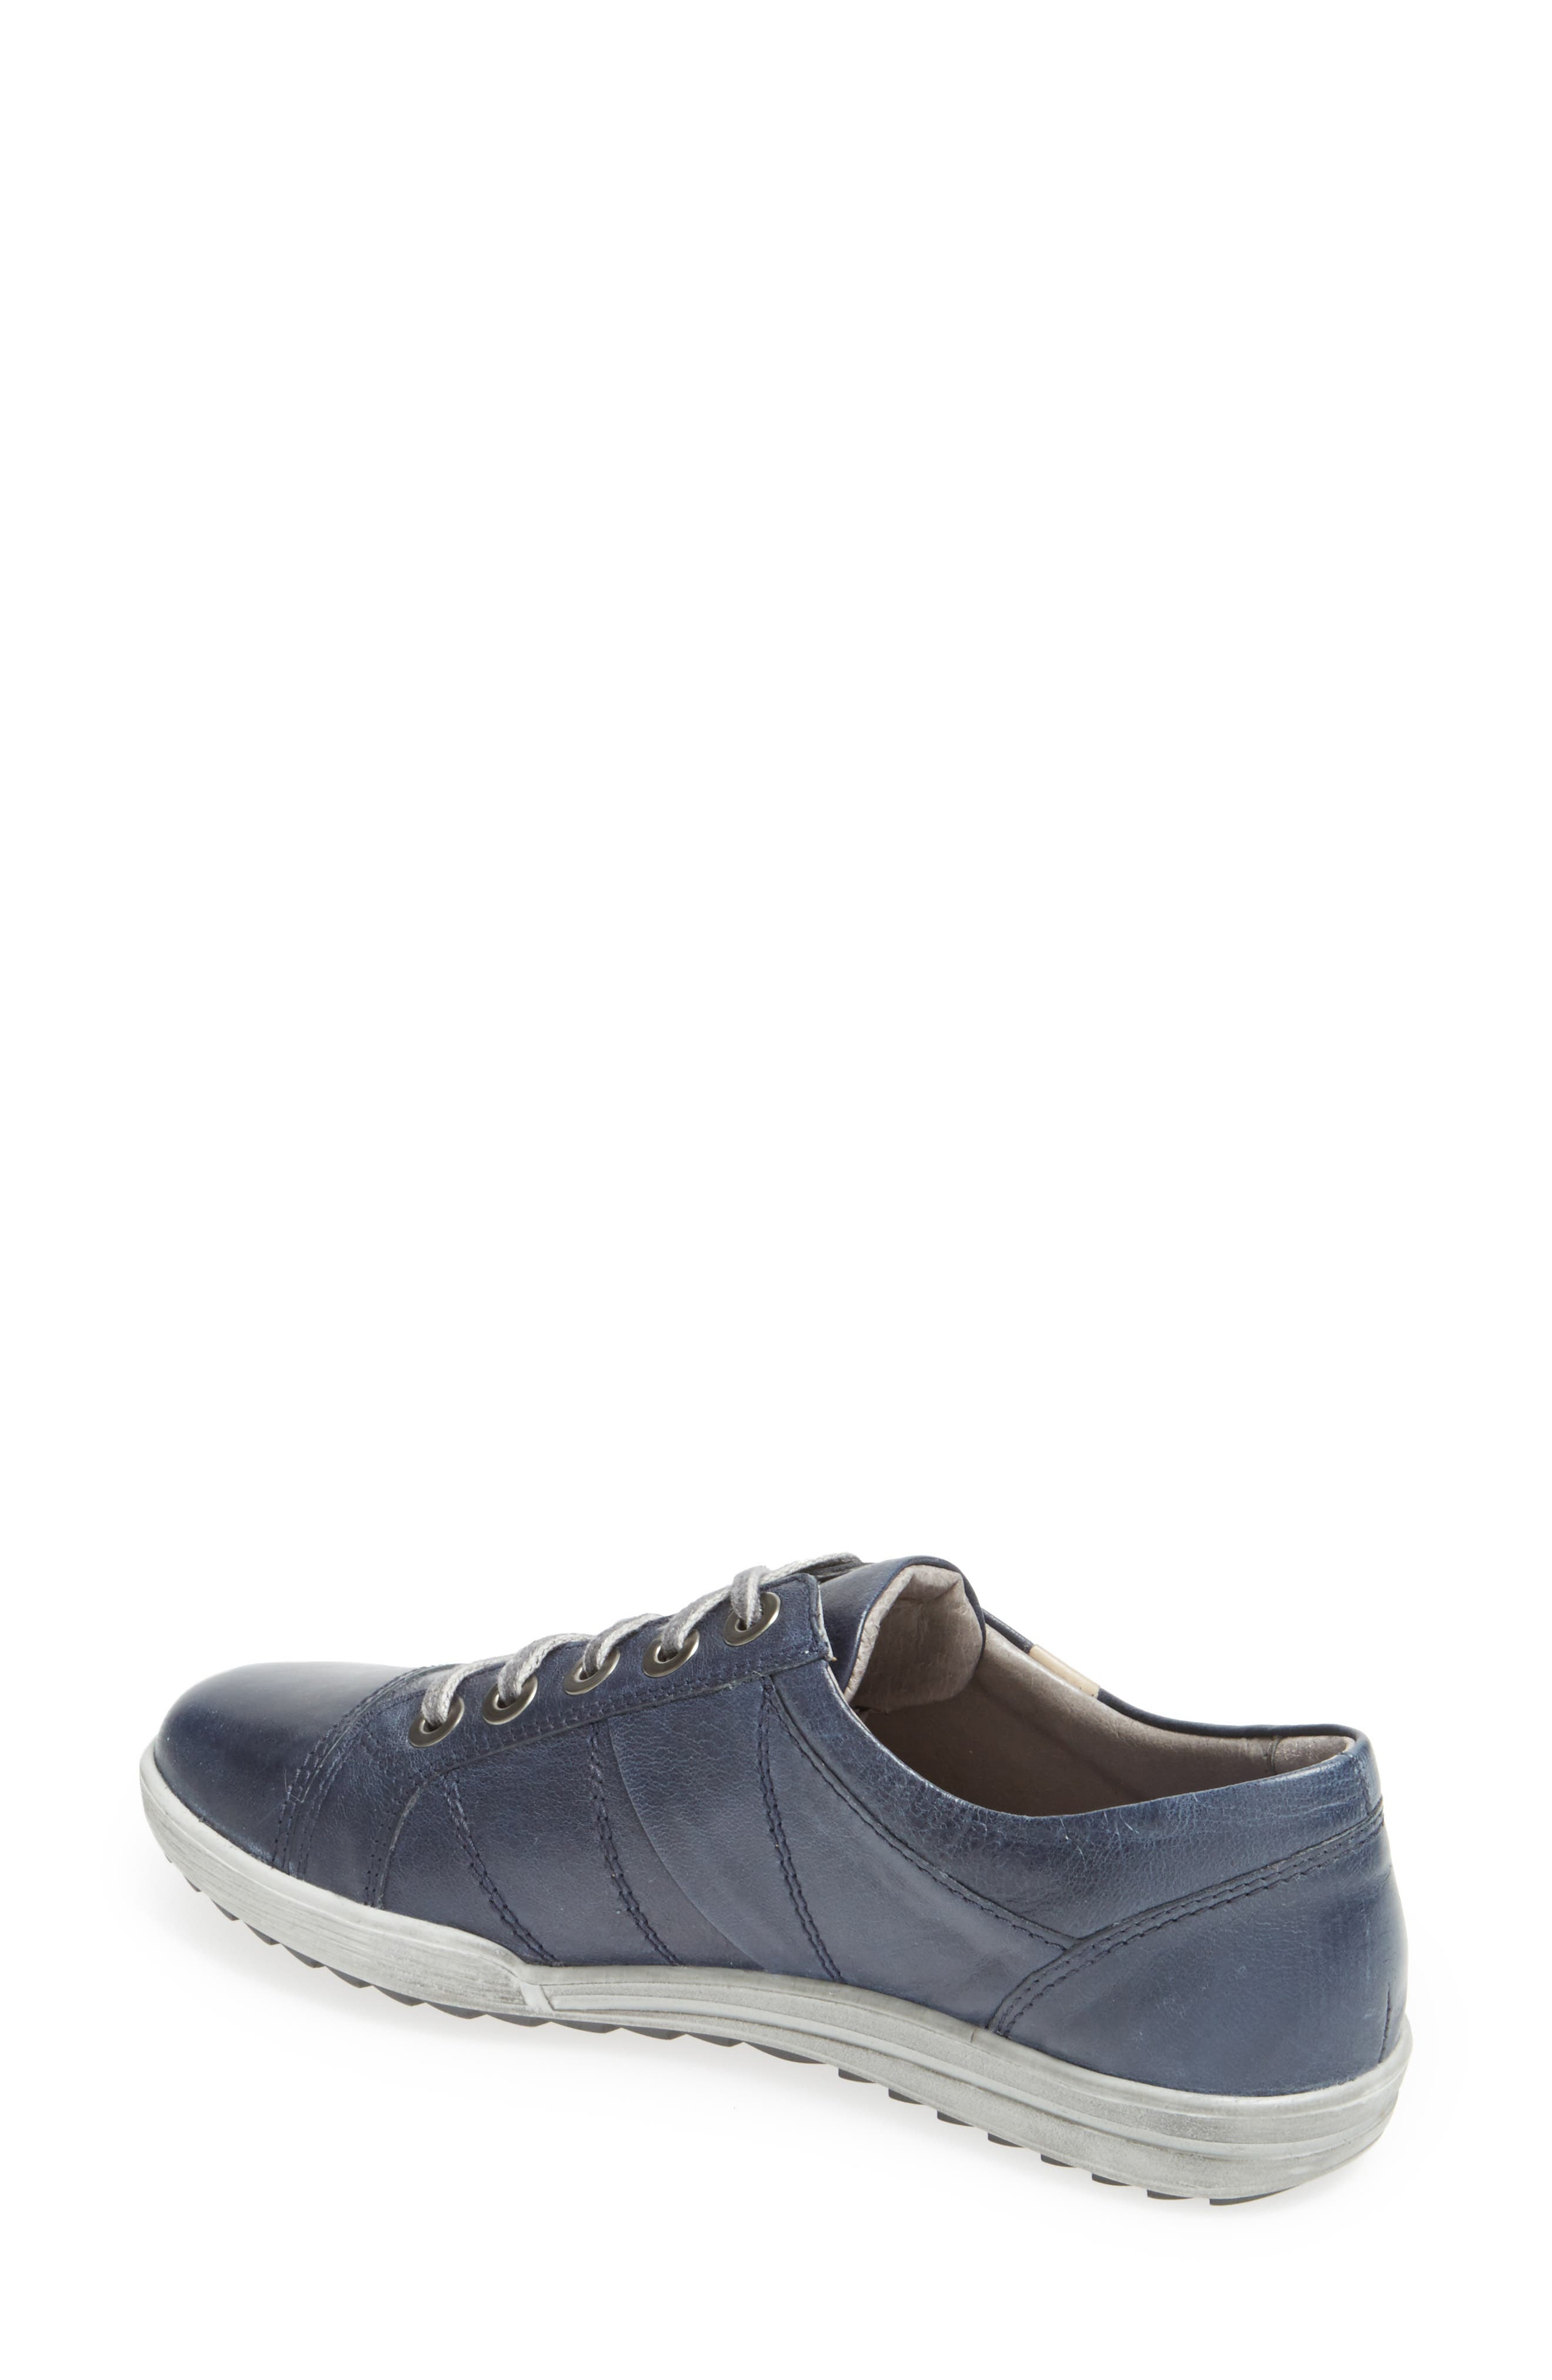 'Dany 05' Leather Sneaker,                             Alternate thumbnail 25, color,